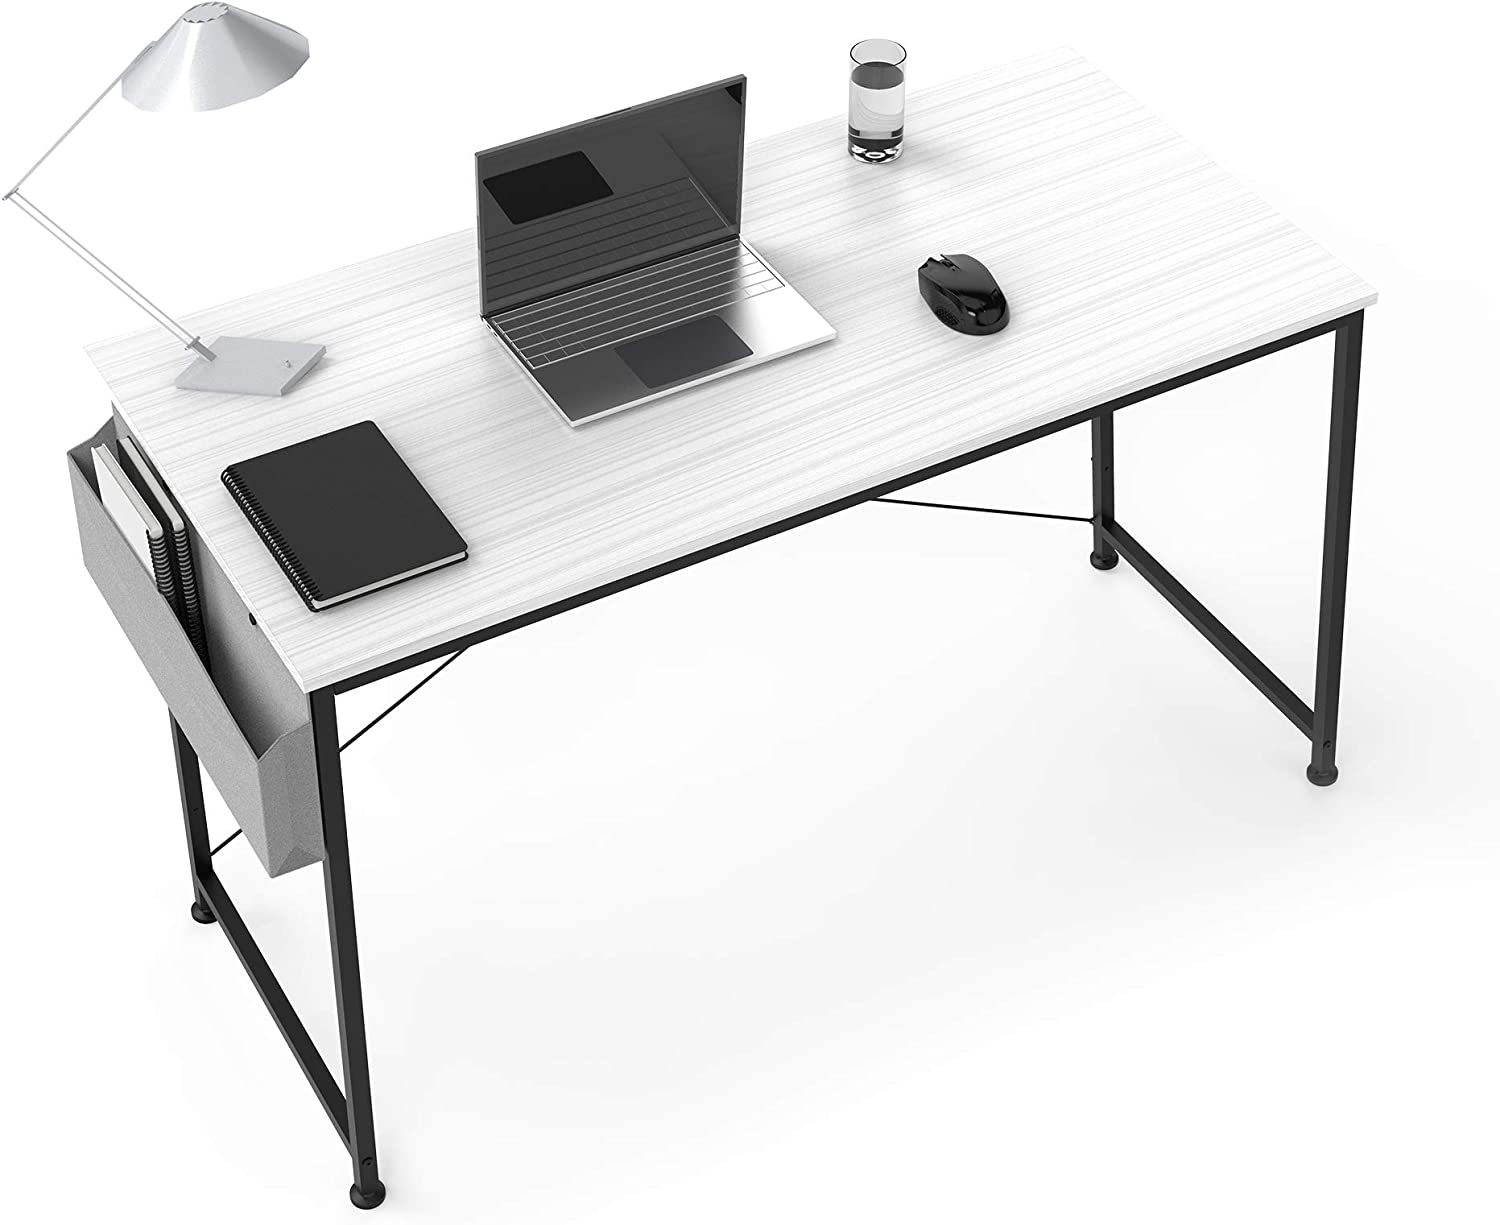 "Computer Desk 47"" Home Small Desk, Writing Desk Laptop Table with Storage Bag and Headphone Hook for Small Spaces, Simple Study Desks for Bedroom, Home, Office"